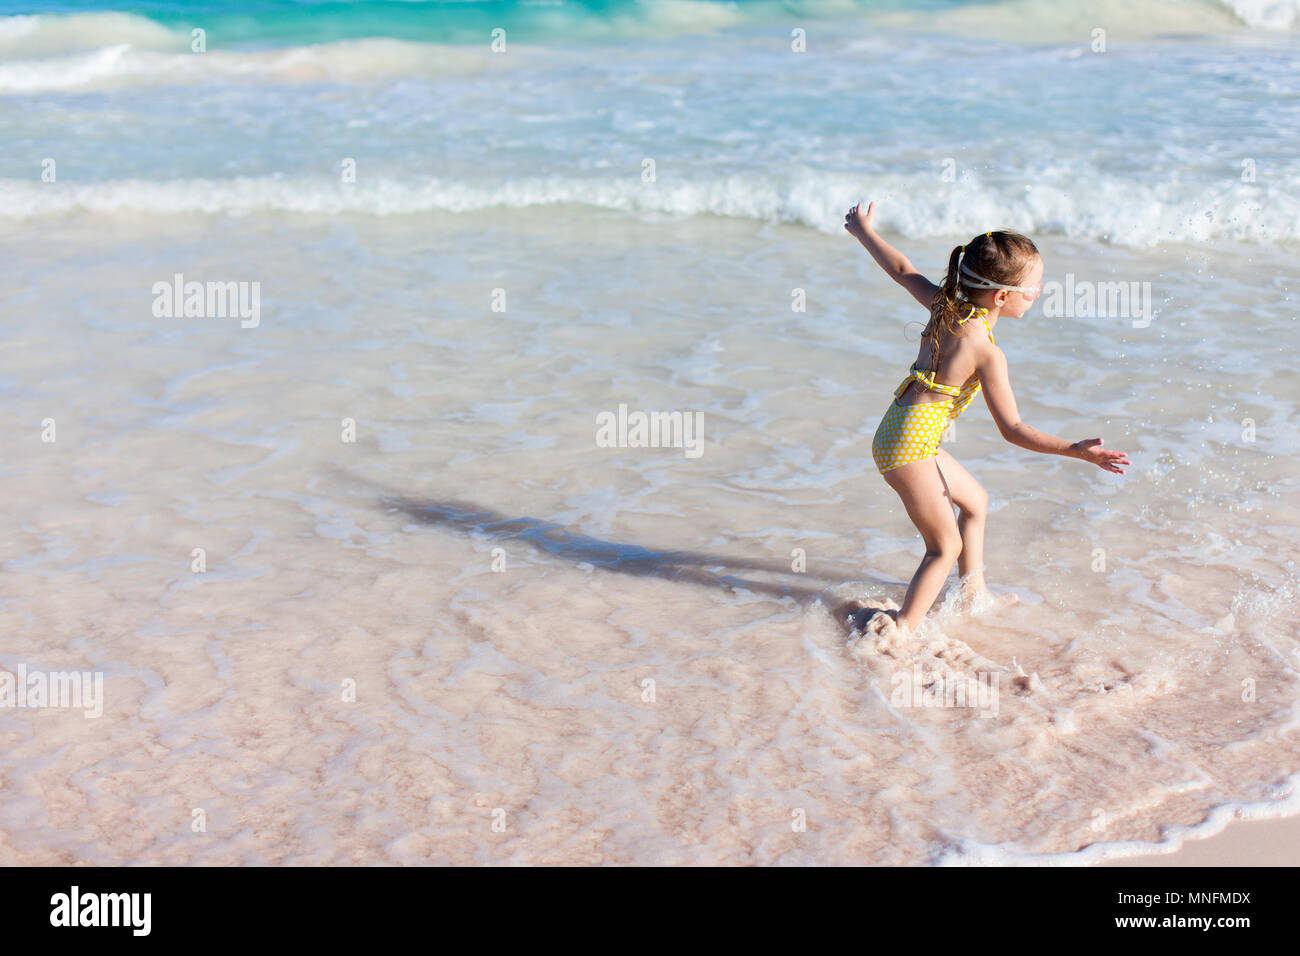 Adorable little girl in yellow swimsuit having fun at beach during summer vacation - Stock Image